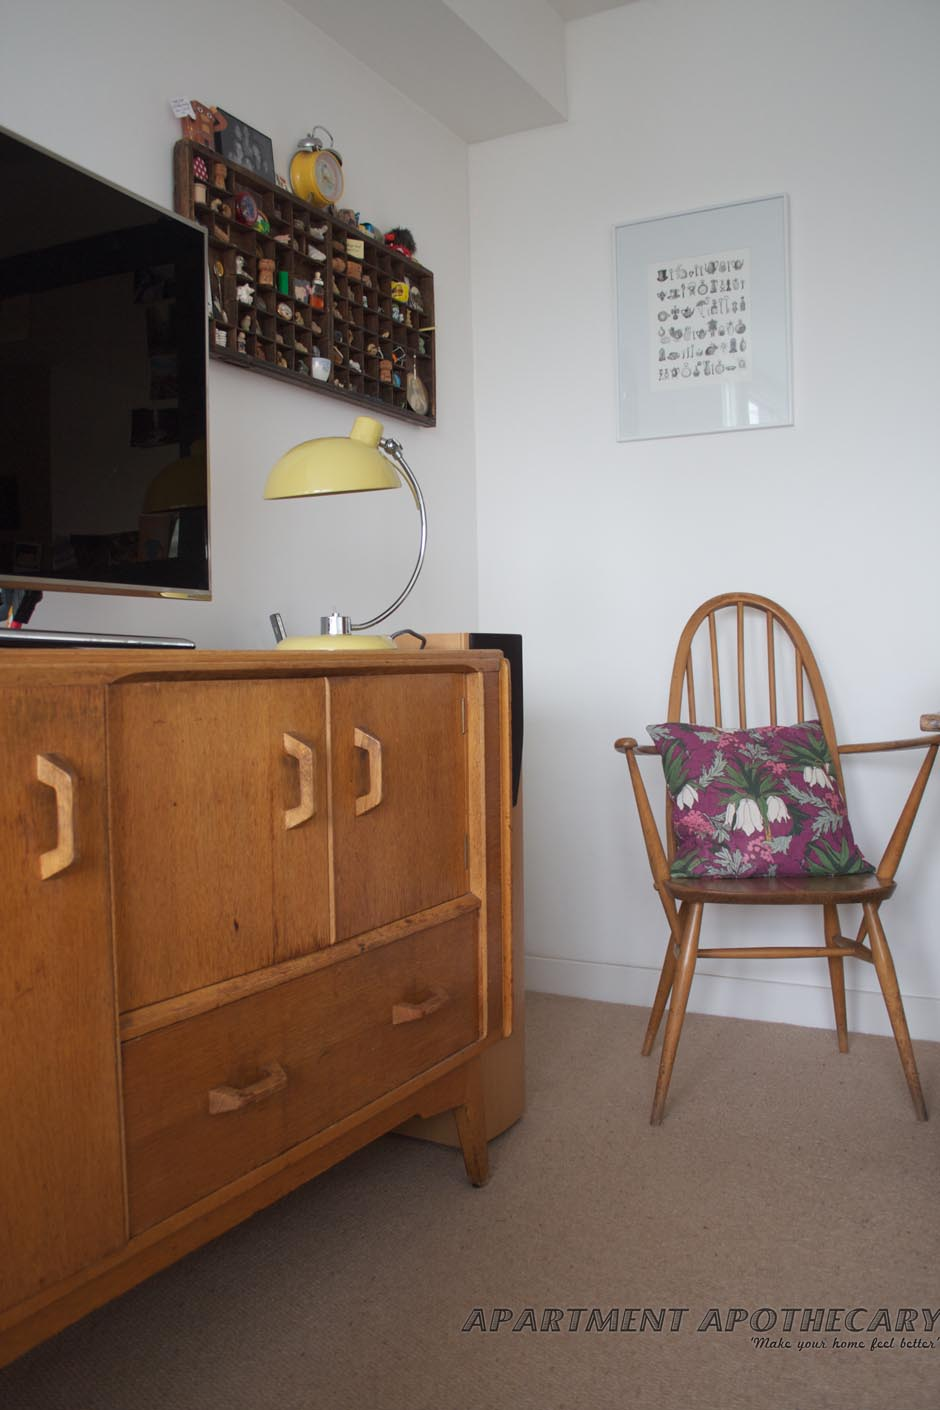 Retro vintage G-Plan sideboard and Ercol chair